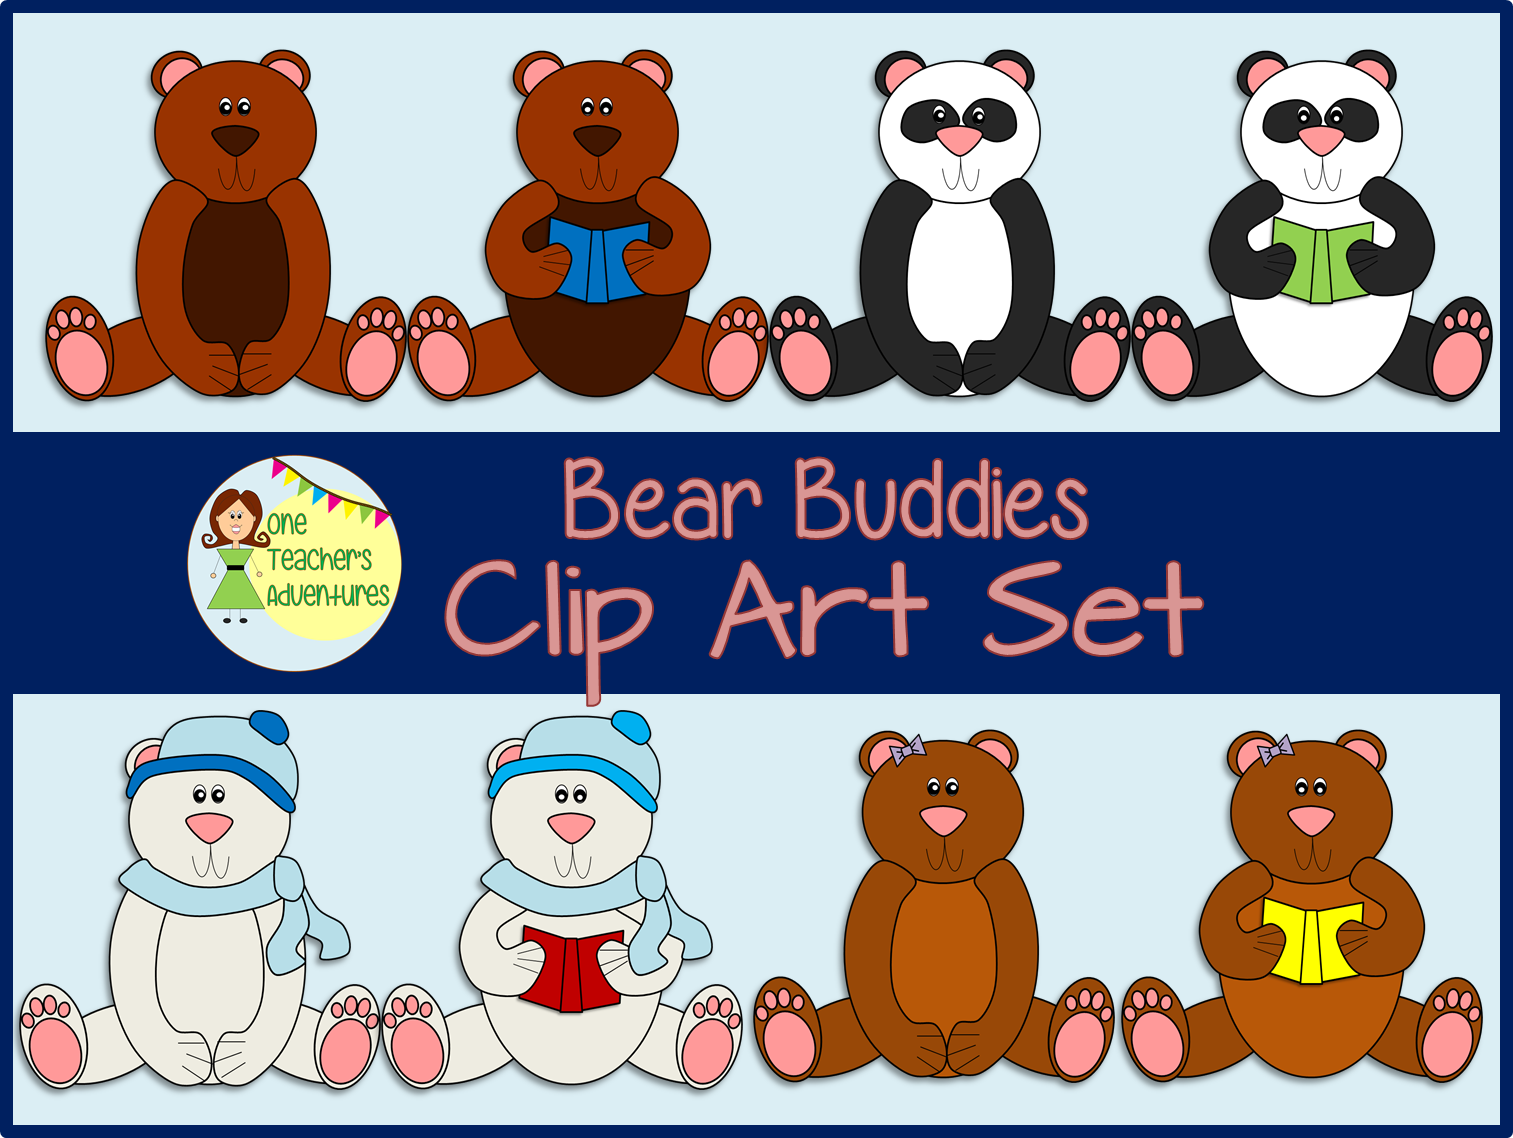 http://www.teacherspayteachers.com/Product/Bear-Buddies-Clip-Art-1404887